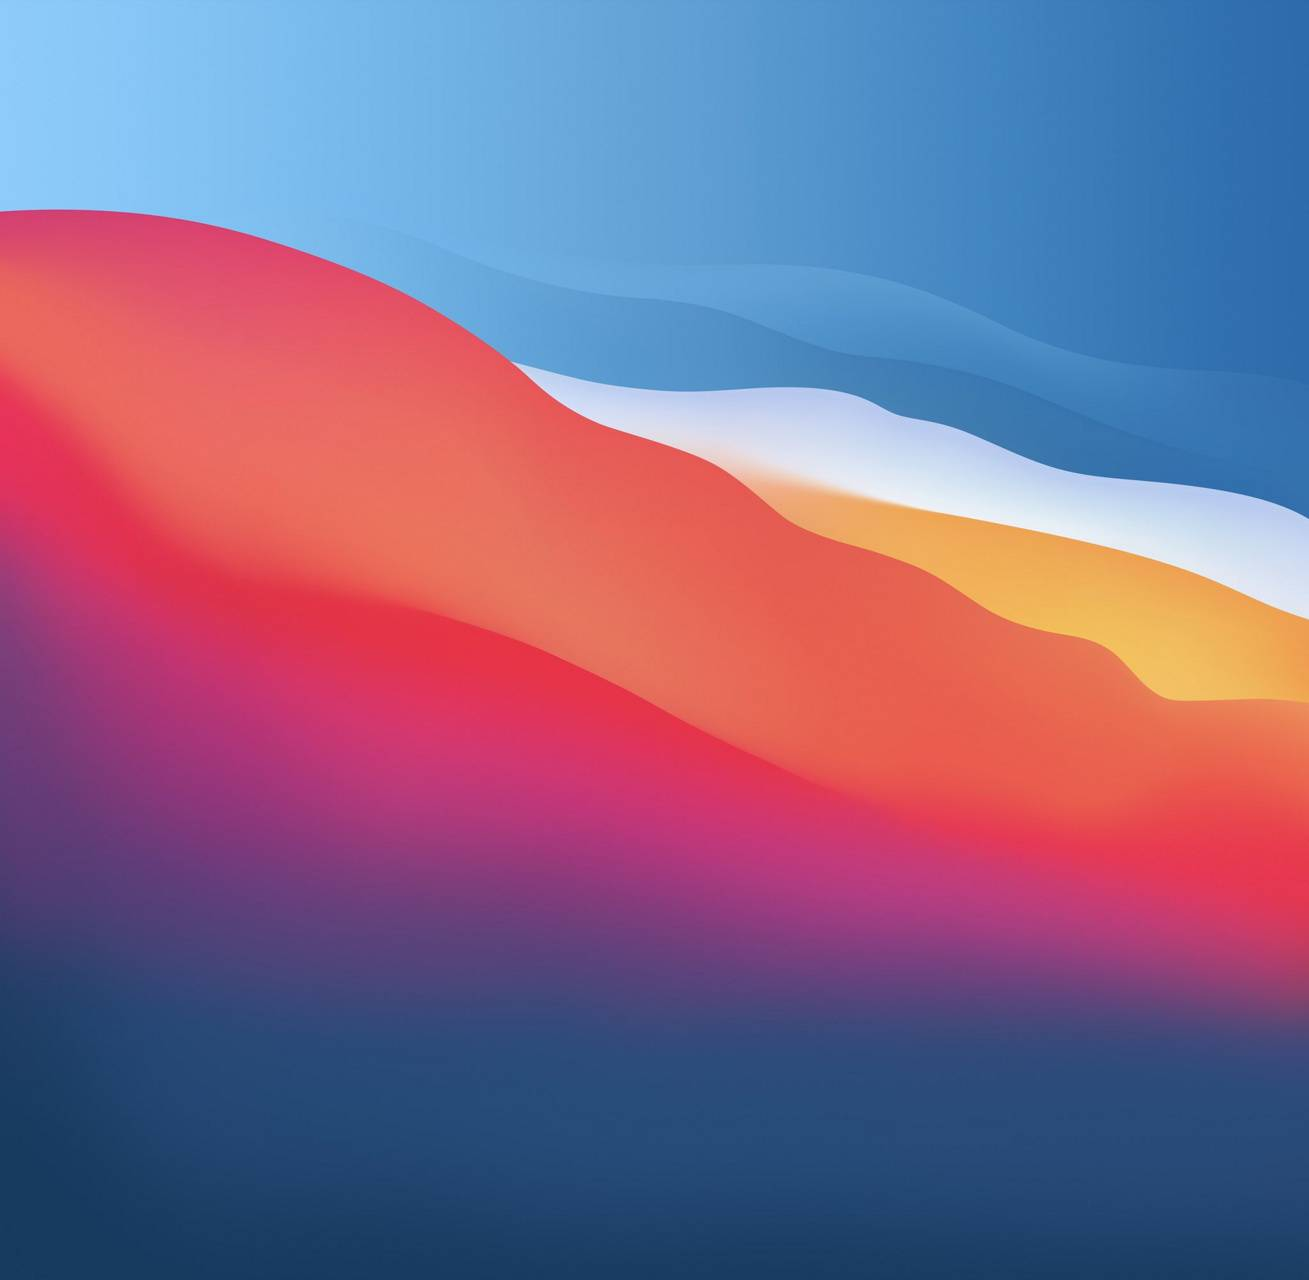 Ios 14 Wallpaper By Phantomdeluxe46976 4a Free On Zedge